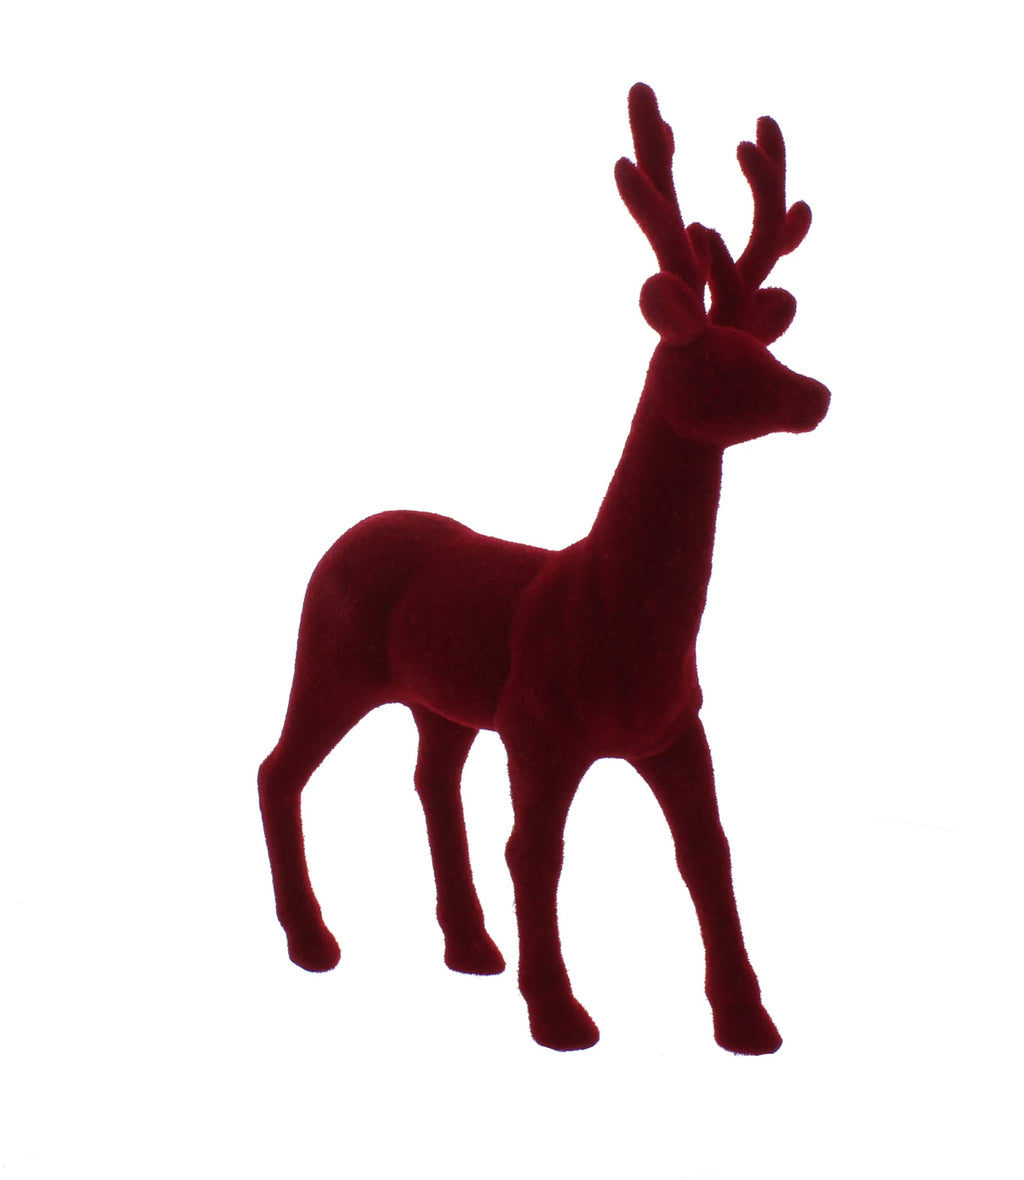 33cm Berry red flocked standing reindeer